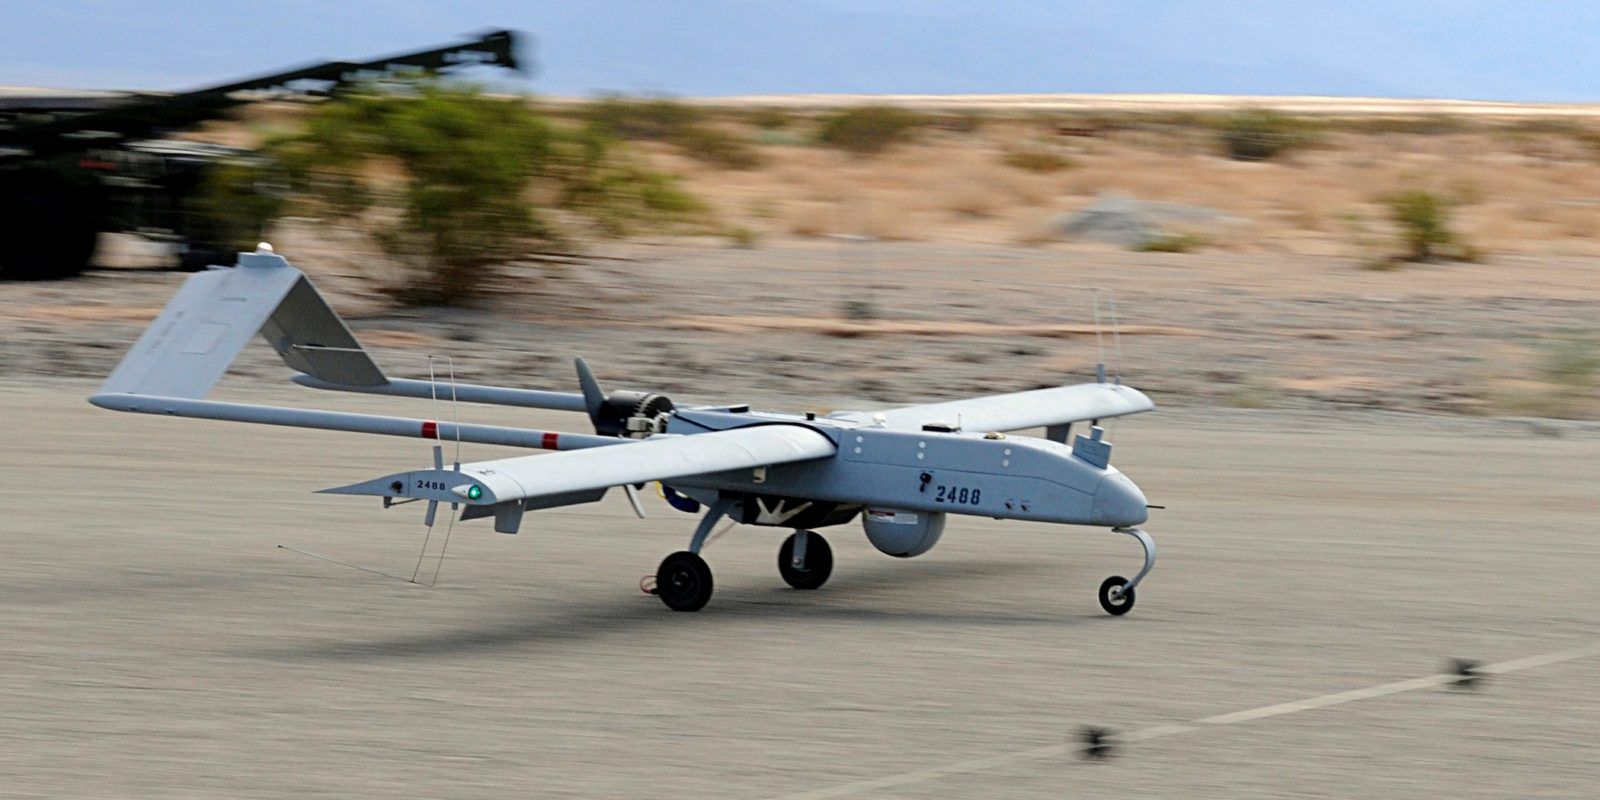 UAV on a runway